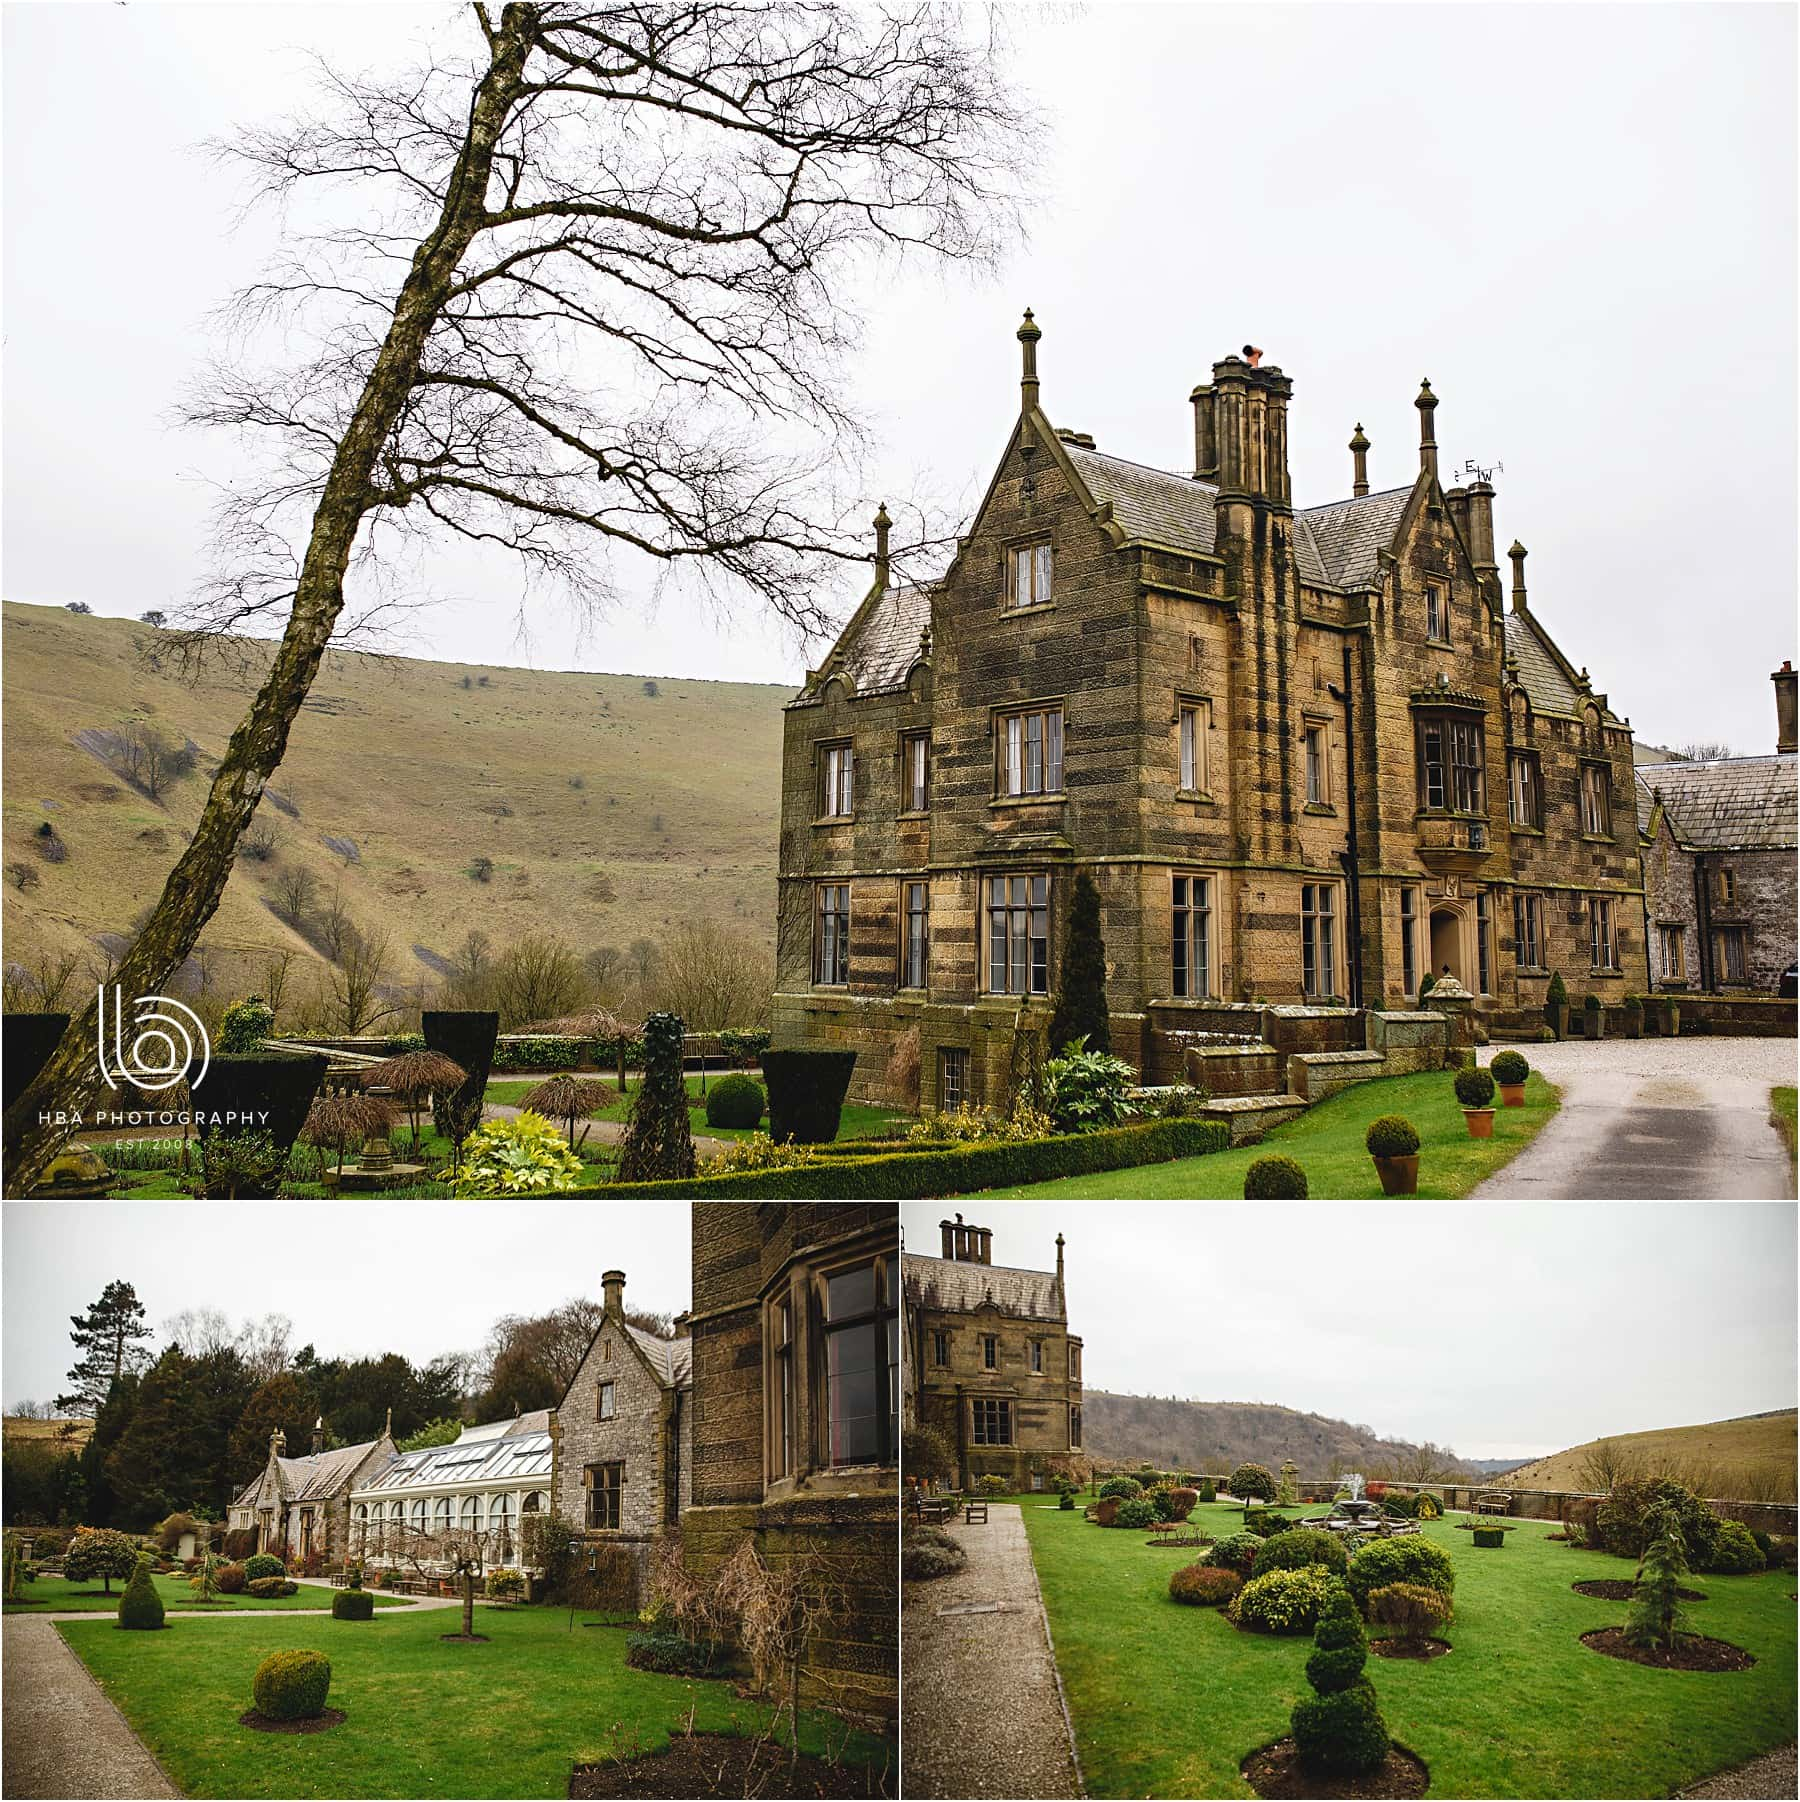 The wedding venue at Cressbrook Hall in Derbyshire